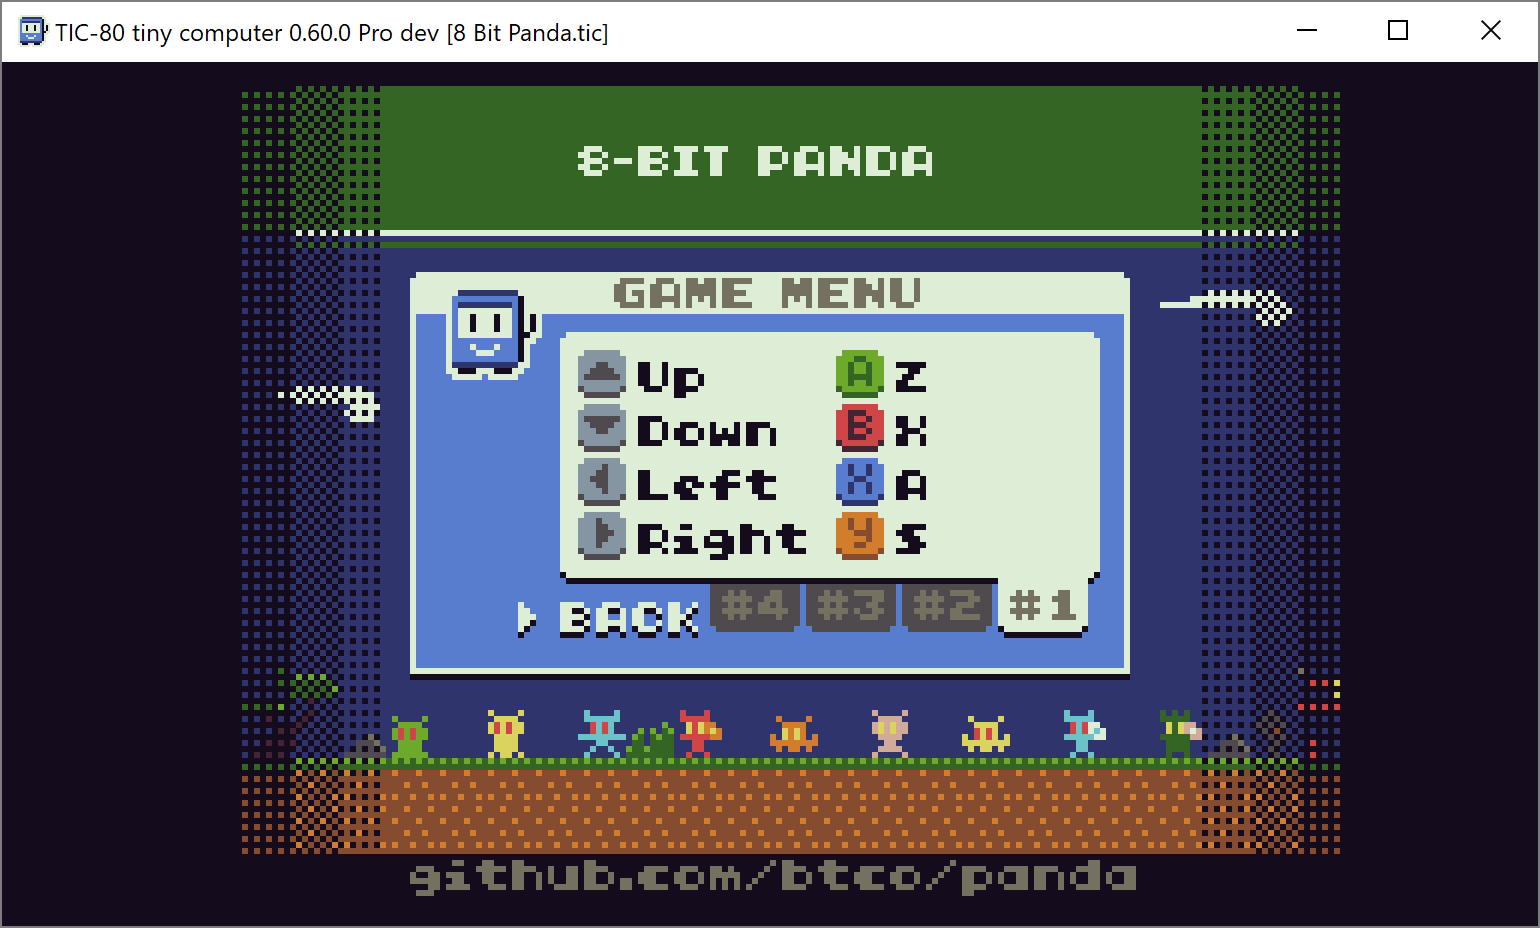 Game Menu -> Gamepad Config configures only 2 gamepads · Issue #494